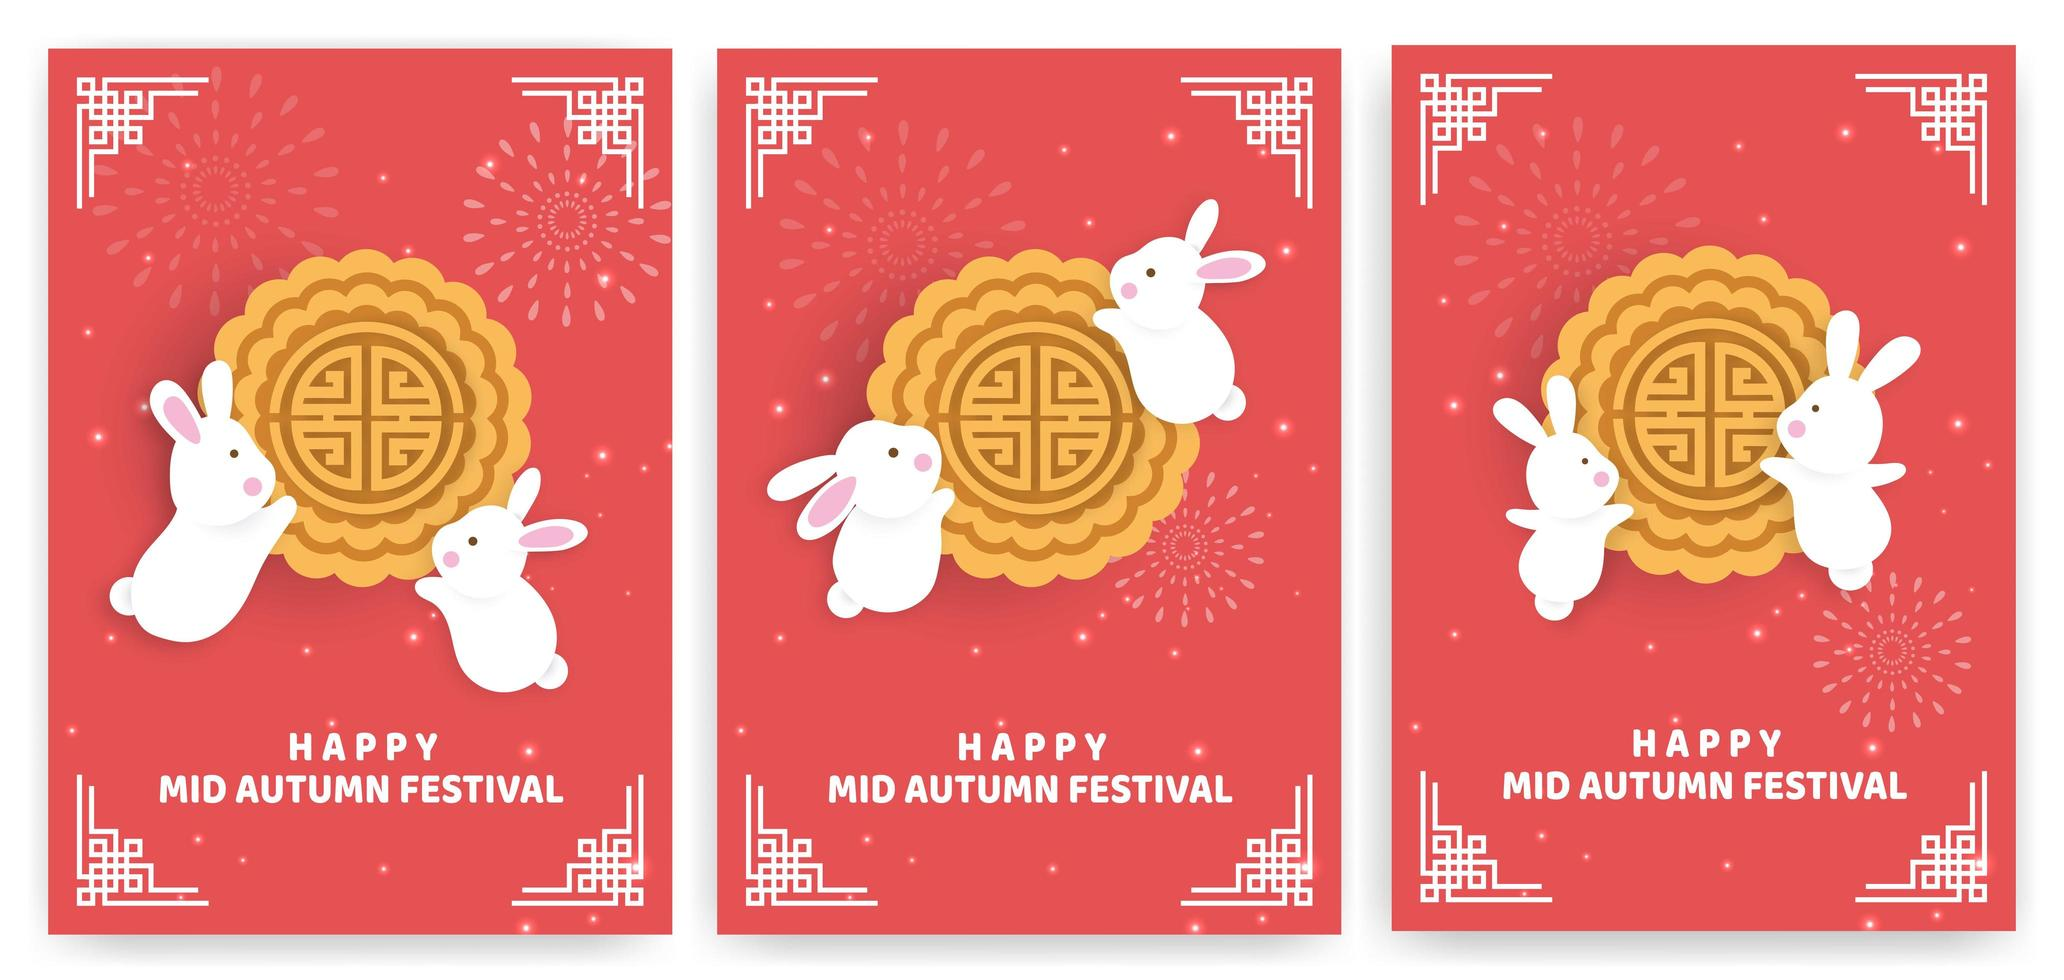 Autumn festival card set with rabbits on red vector